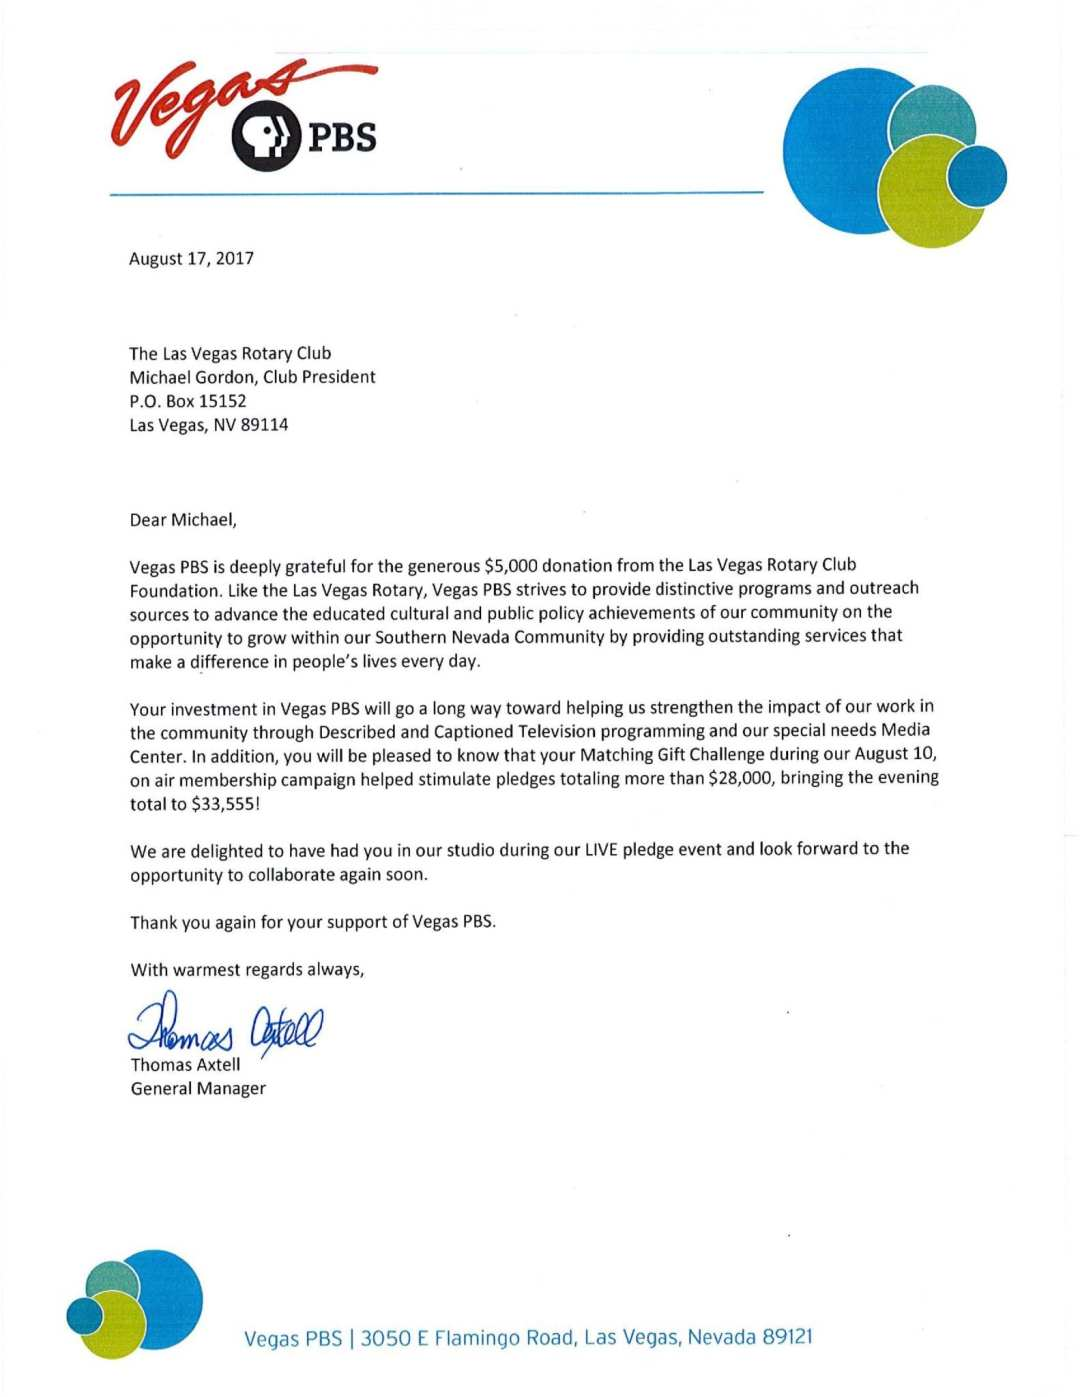 Thank You Letters  Las Vegas Rotary Club